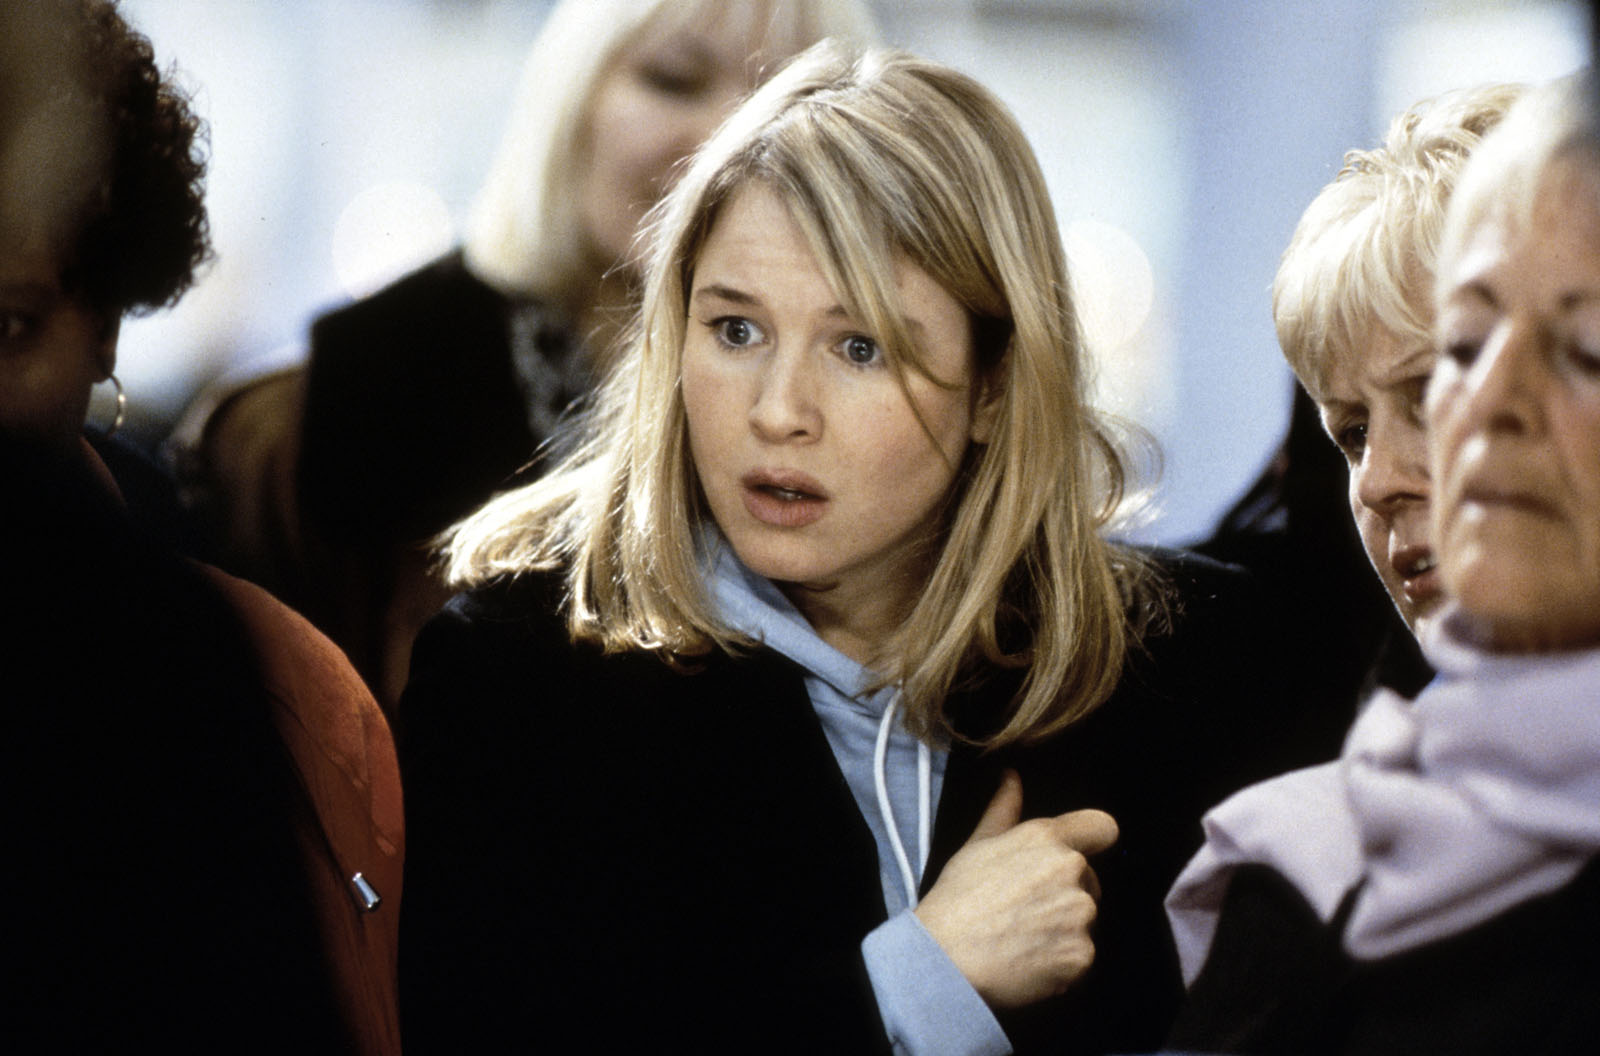 Le journal de bridget jones - Streaming coup de foudre a notting hill ...